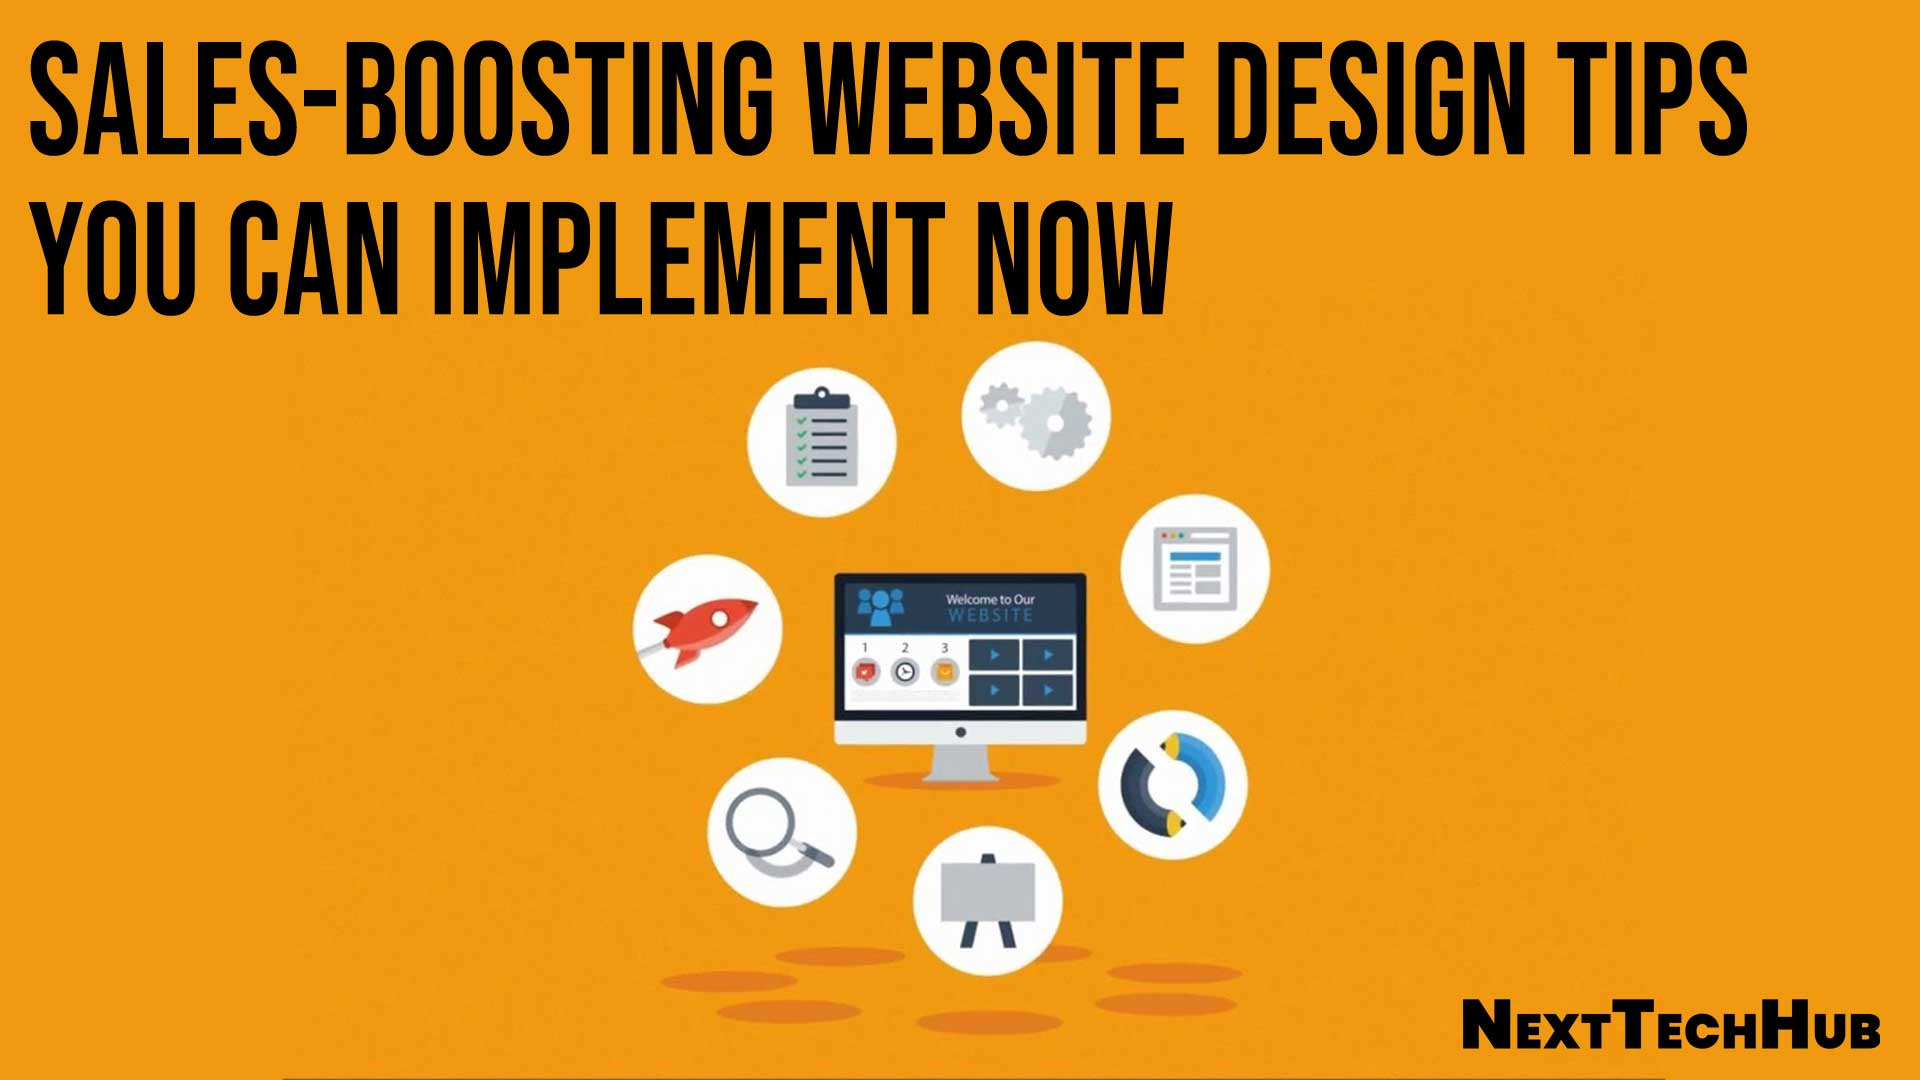 Sales Boosting Website Design Tips You Can Implement Now